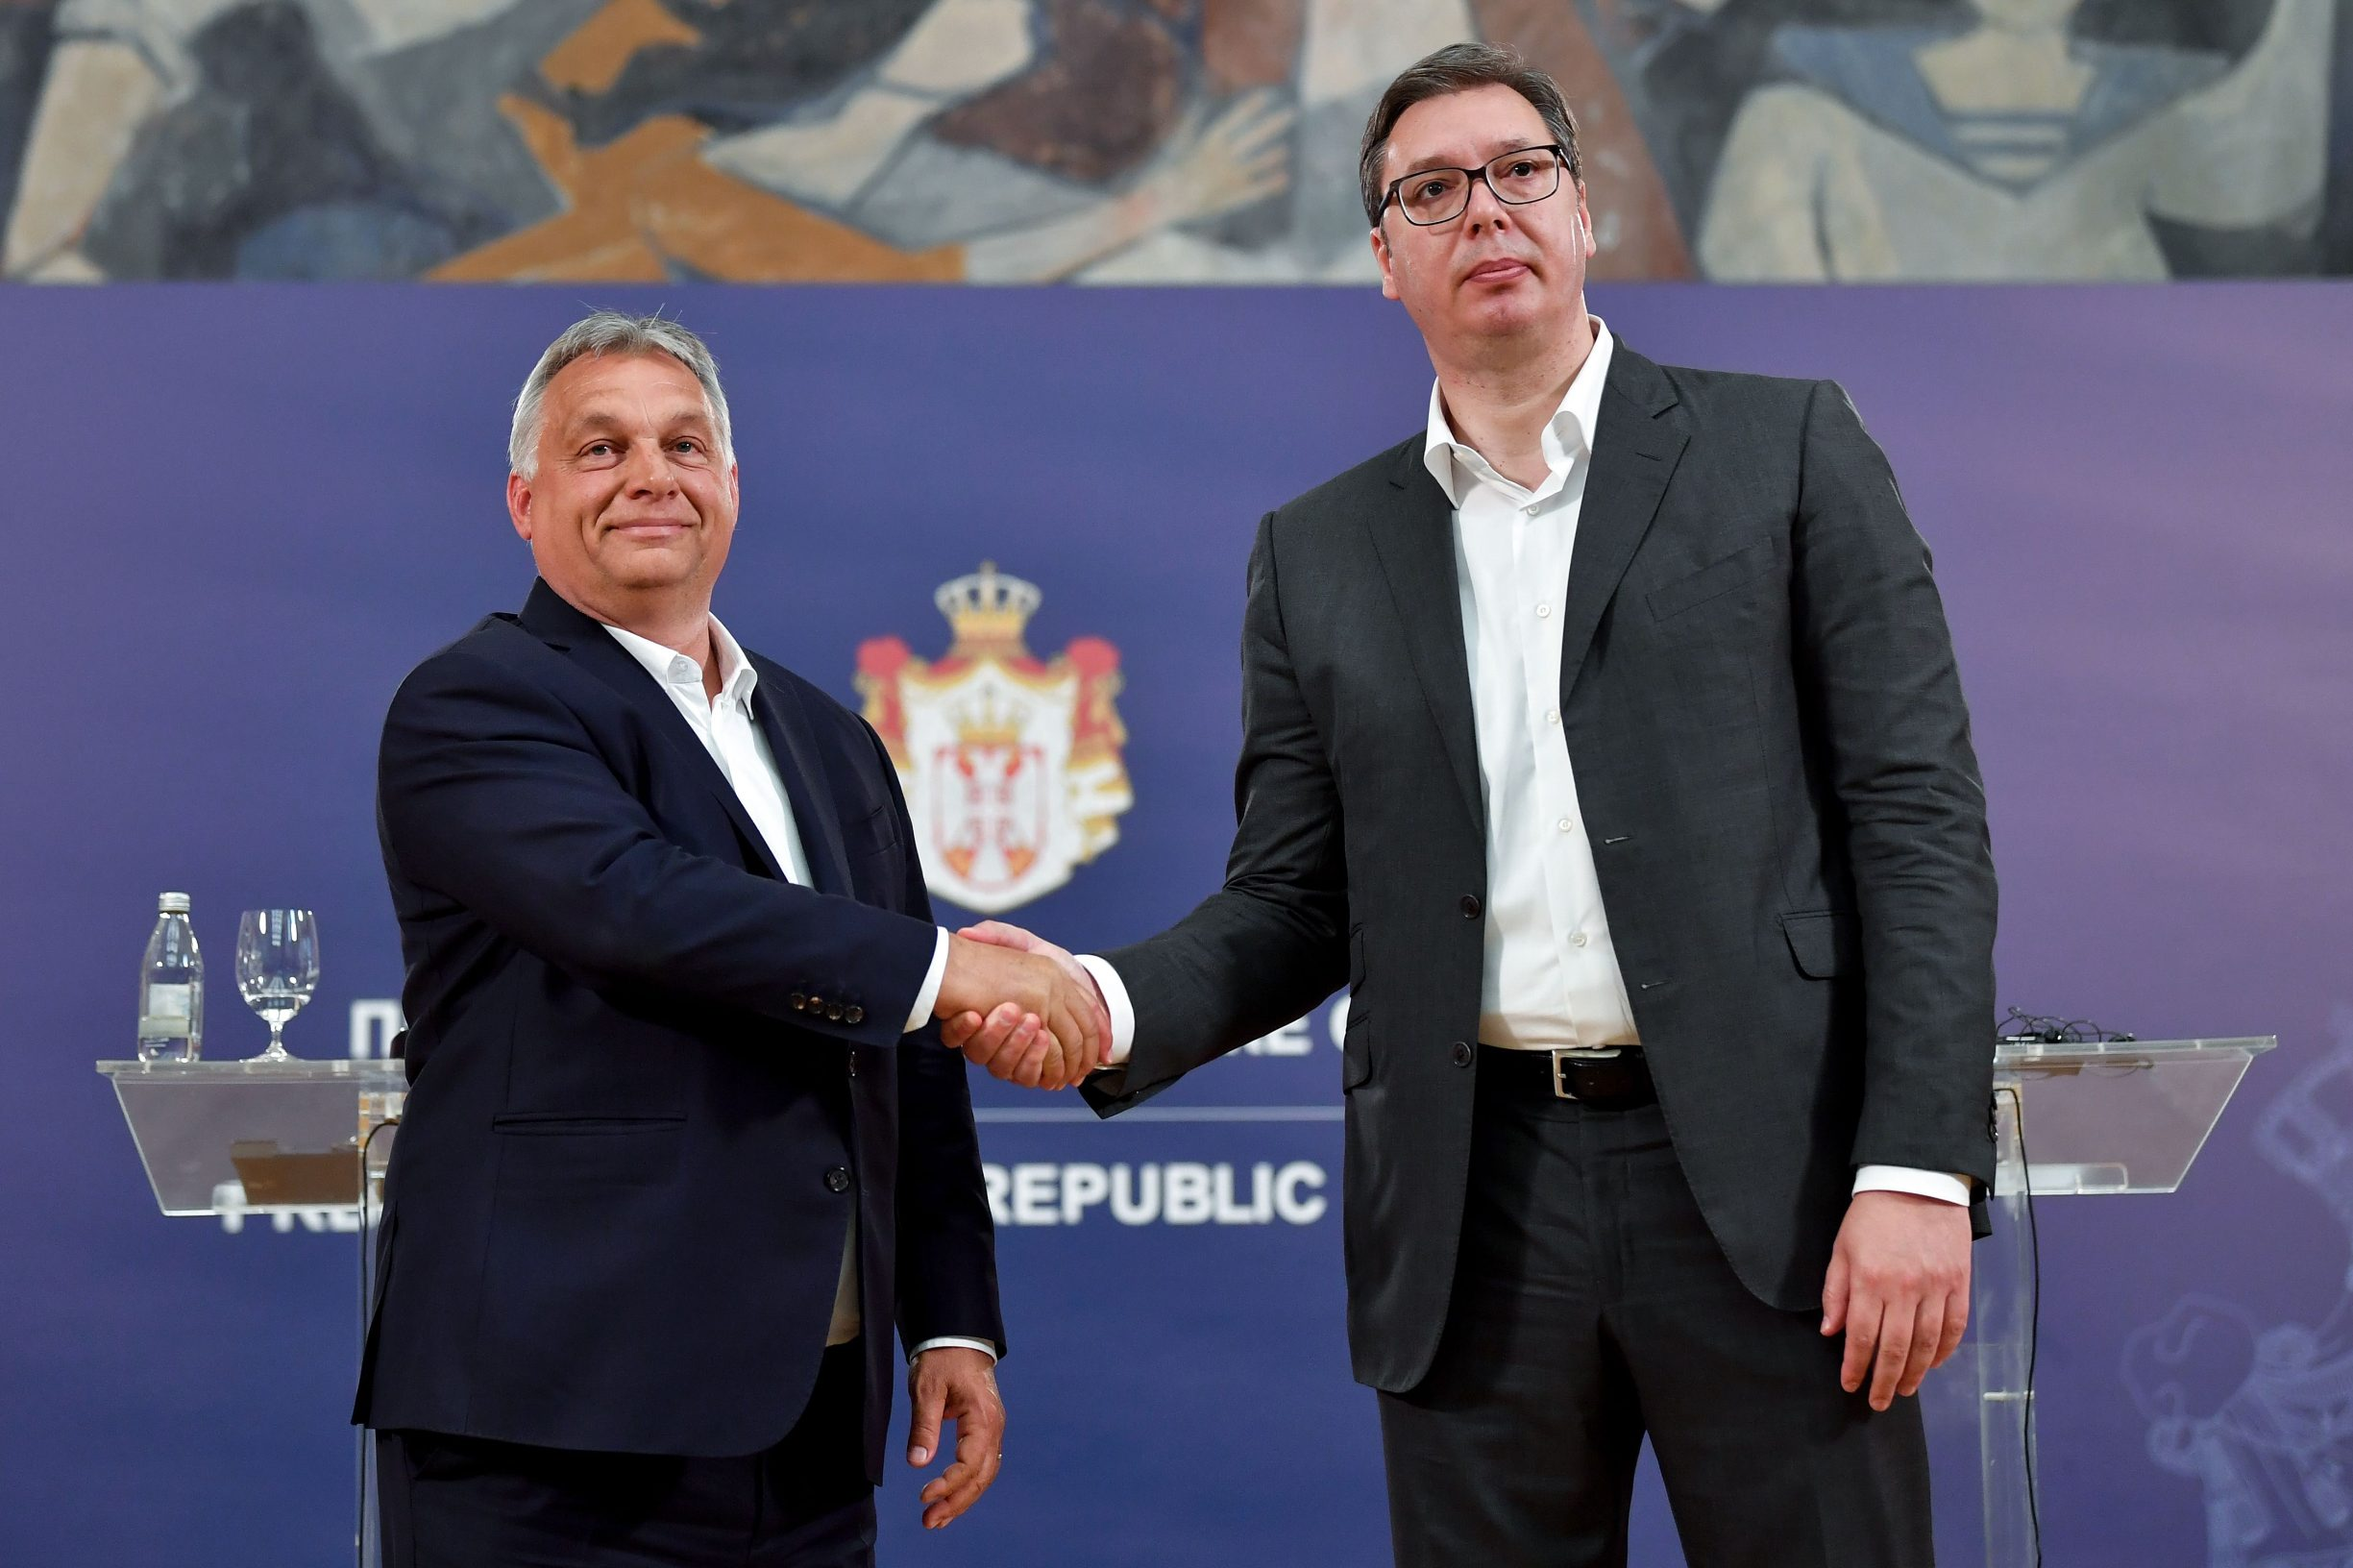 Serbian President Aleksandar Vucic (R) shakes hands with Hungarian Prime Minister Viktor Orban after a joint press conference in Belgrade on May 15, 2020. (Photo by Andrej ISAKOVIC / AFP)